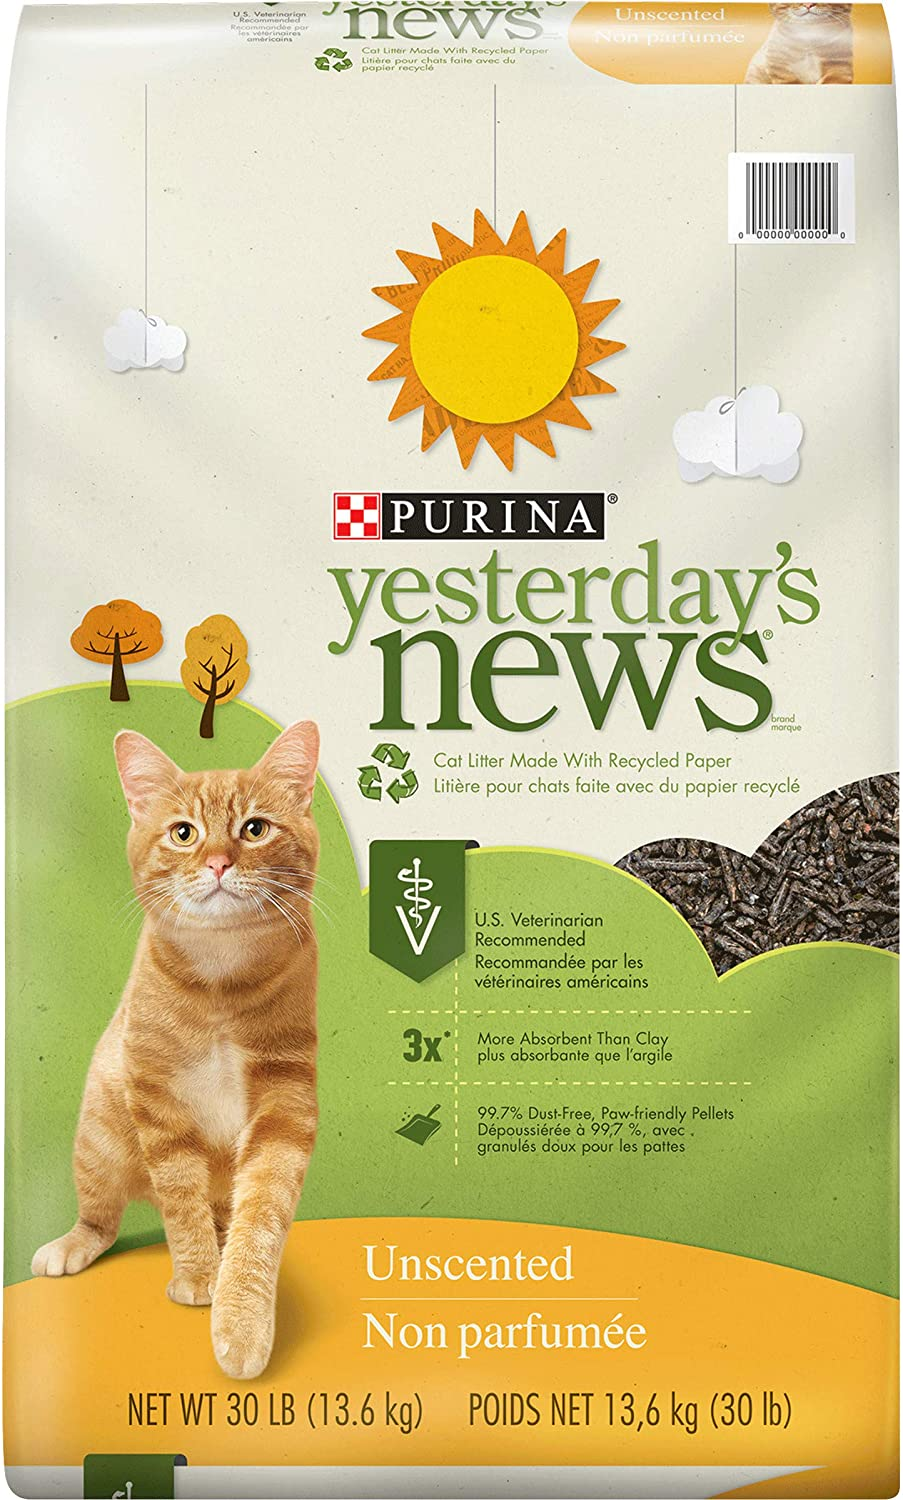 Super-cheap PURINA Yesterday's News Odor Pap Unscented Control Lightweight Product